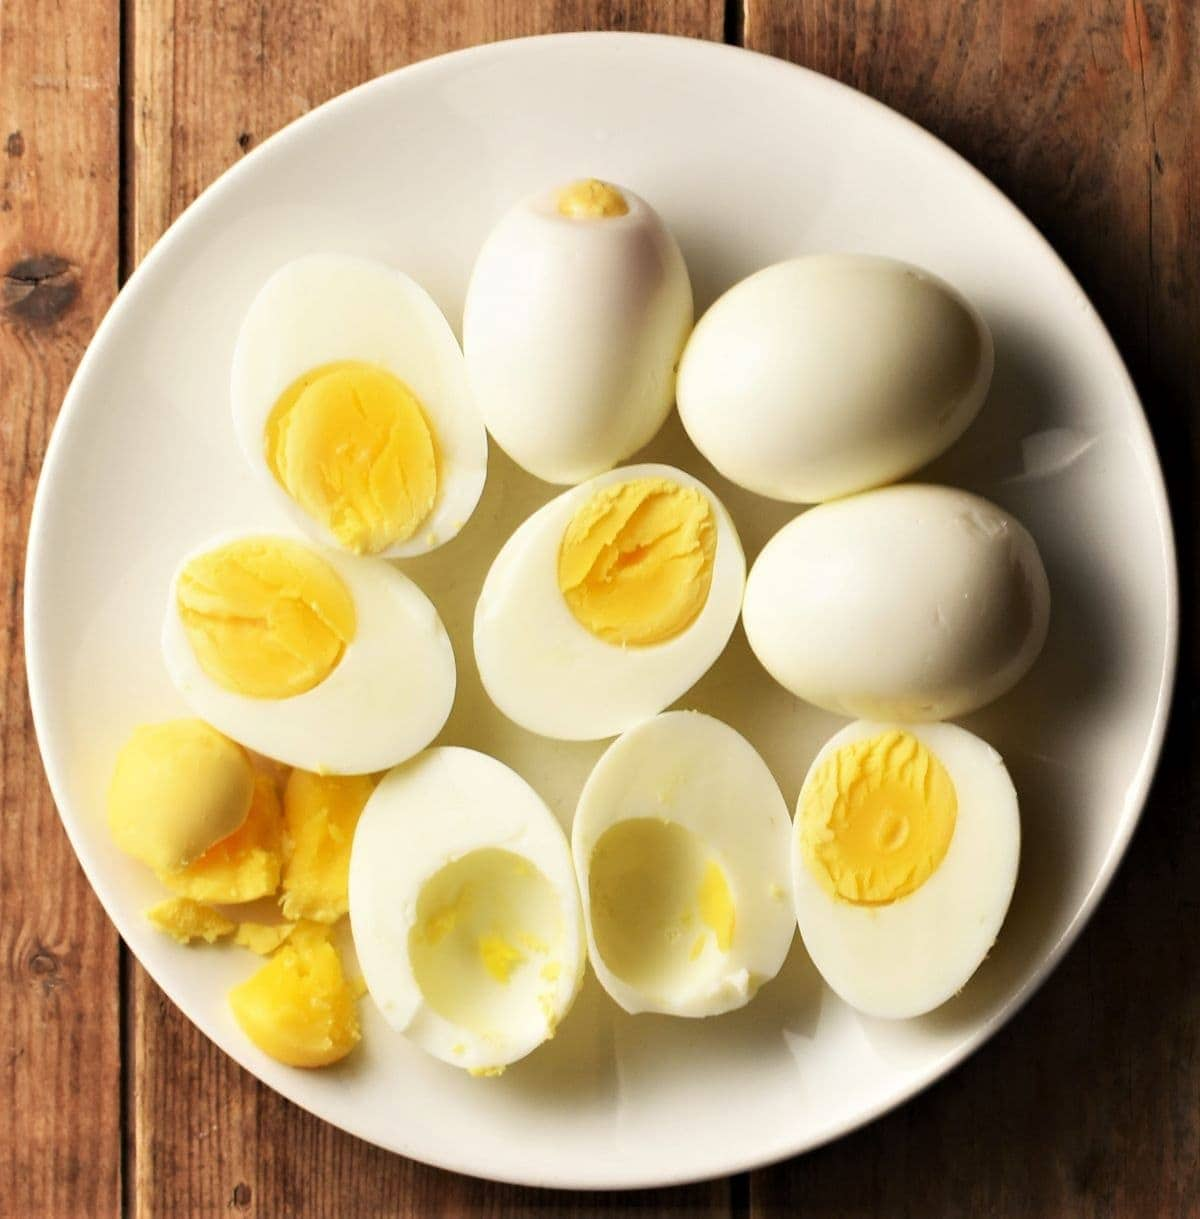 Halved hard boiled eggs on top of white plate.